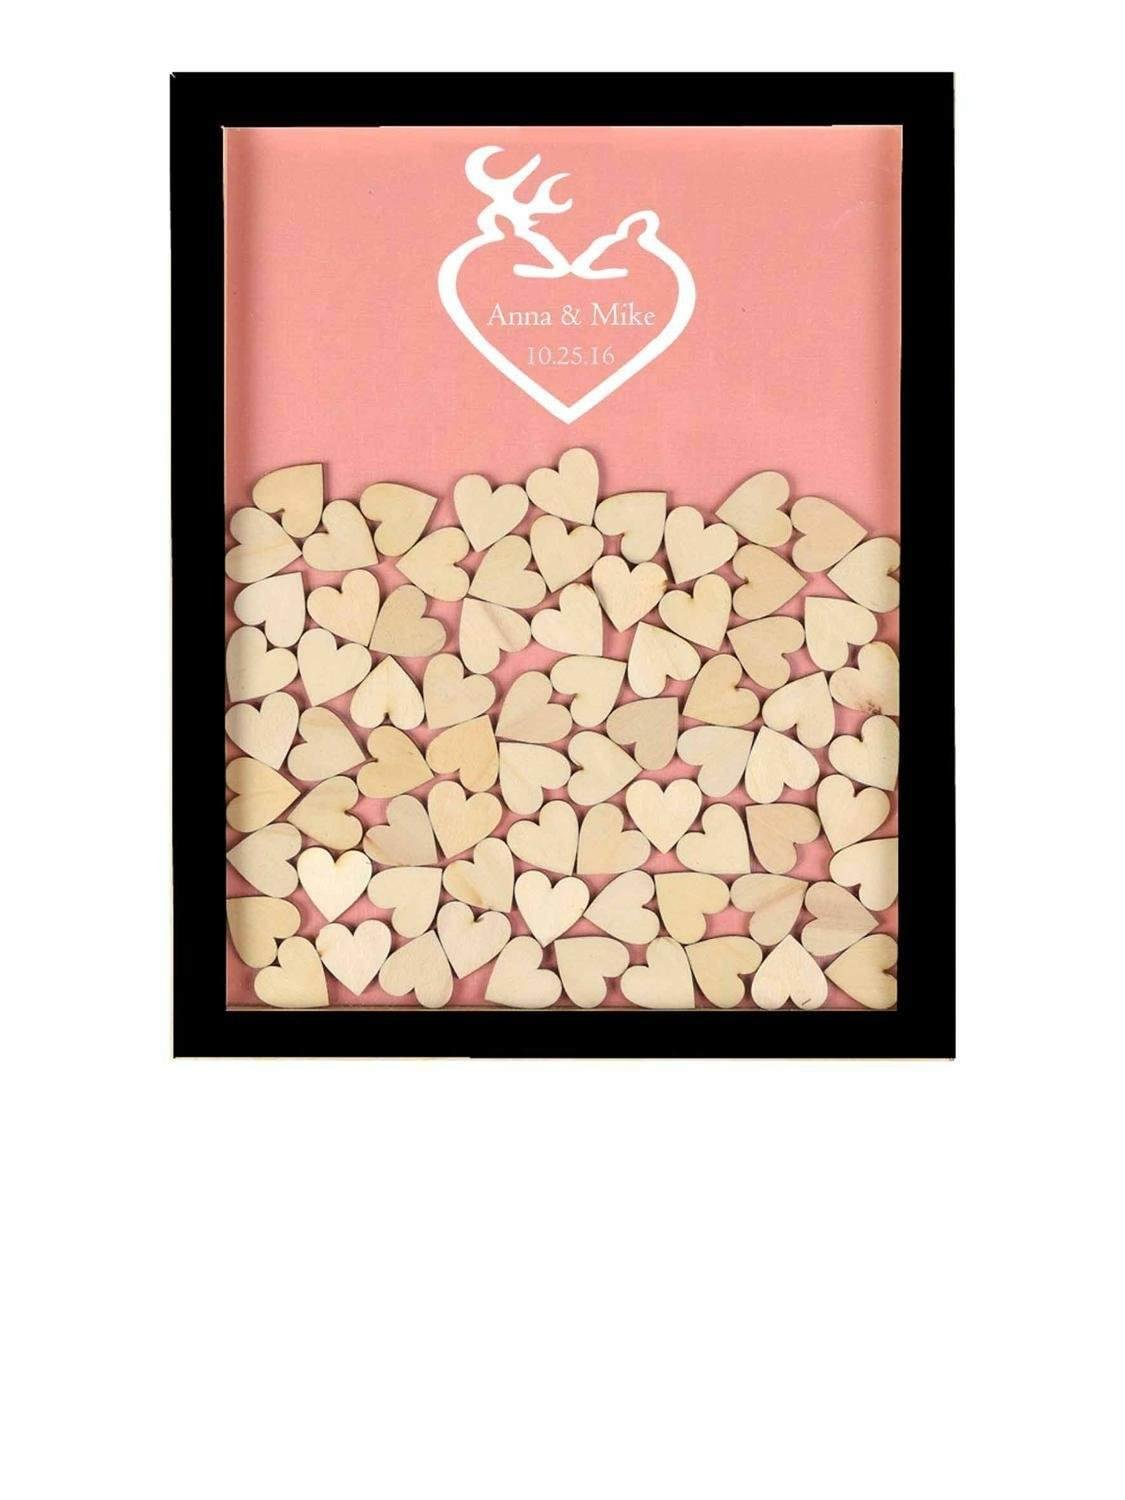 Teisyouhu Custom Coral Love Reindeer Themed Guest Book Sign In Wood Drop Top Guest Book Wedding Alternative Frame for Wedding Party Decorations 12 x 14 inch with 120 Hearts